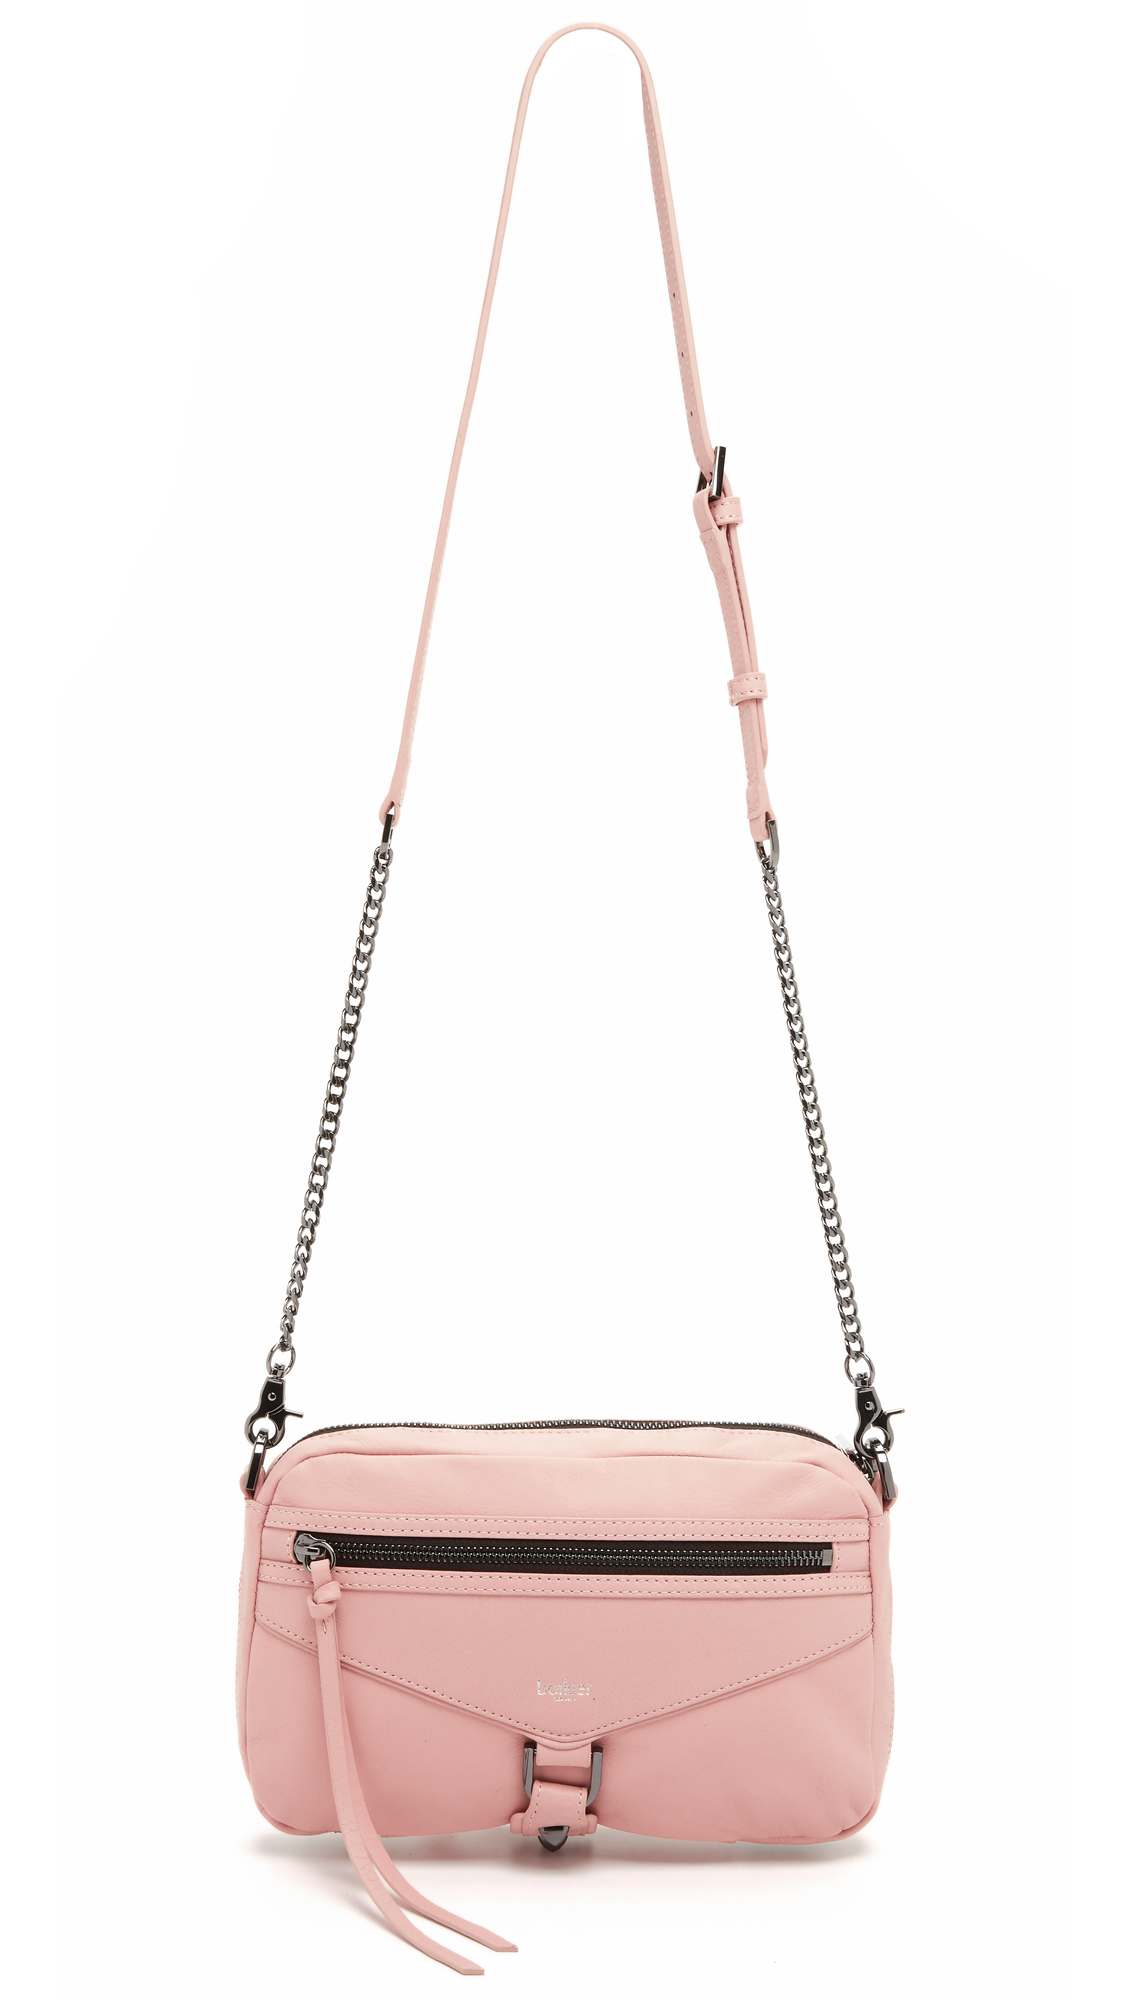 Botkier Trigger East / West Cross Body Bag in Blush (Pink)